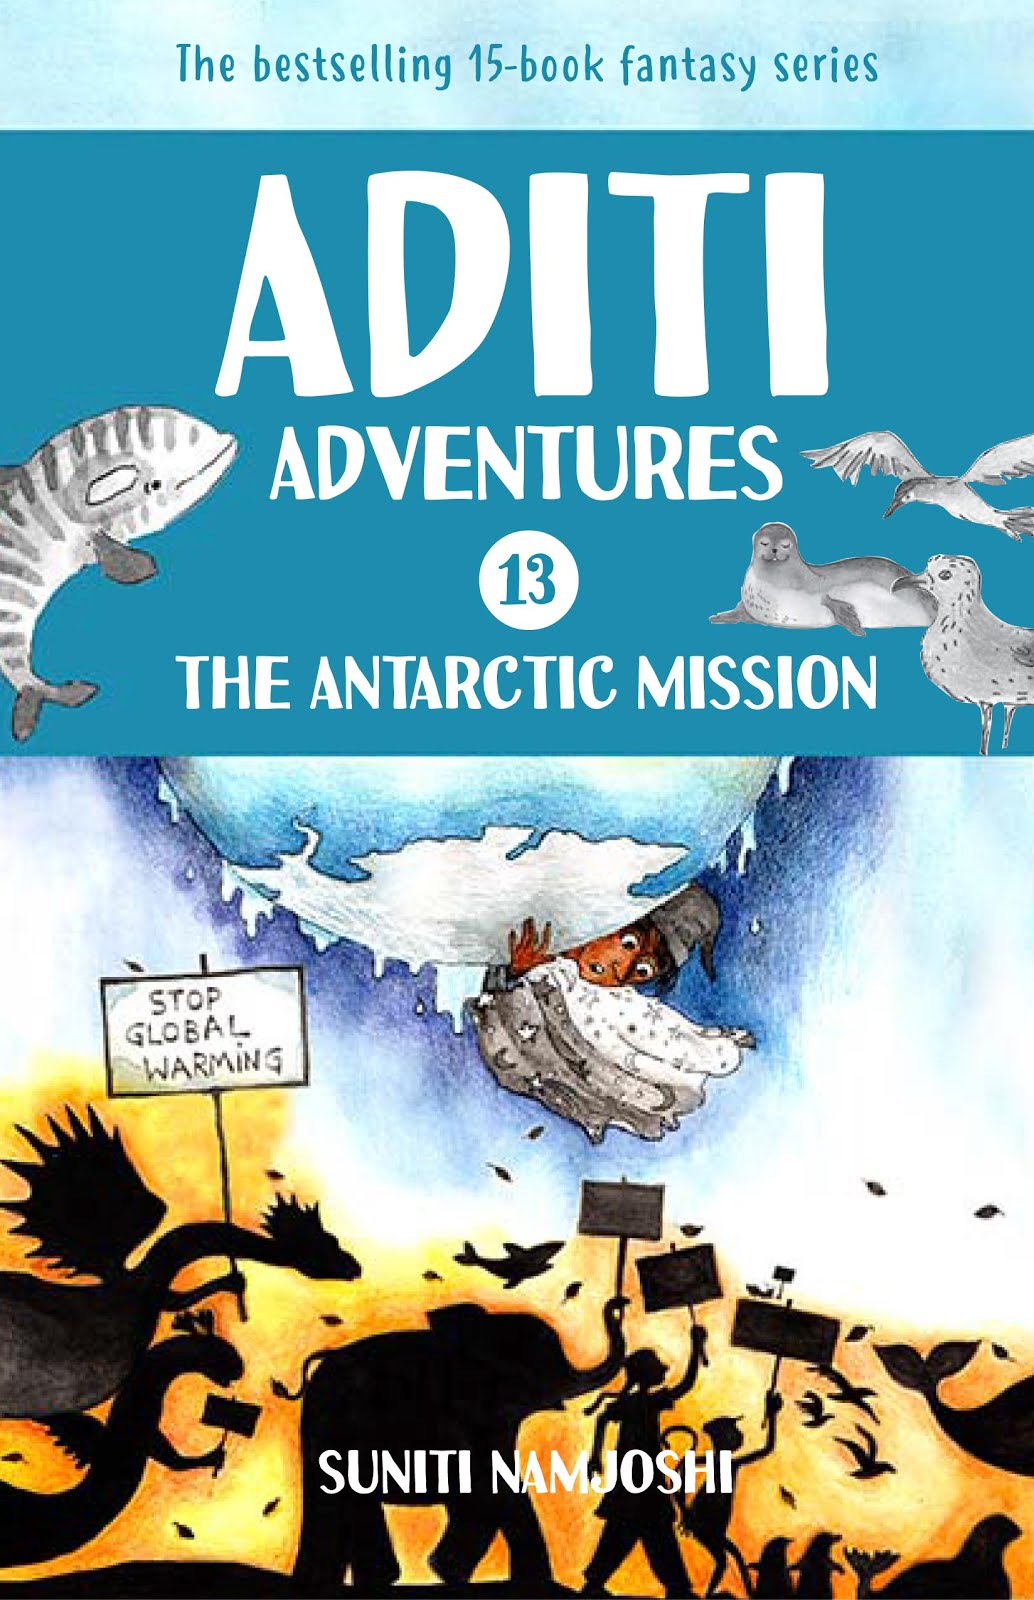 Check out Aditi's latest adventure in Antarctica!!